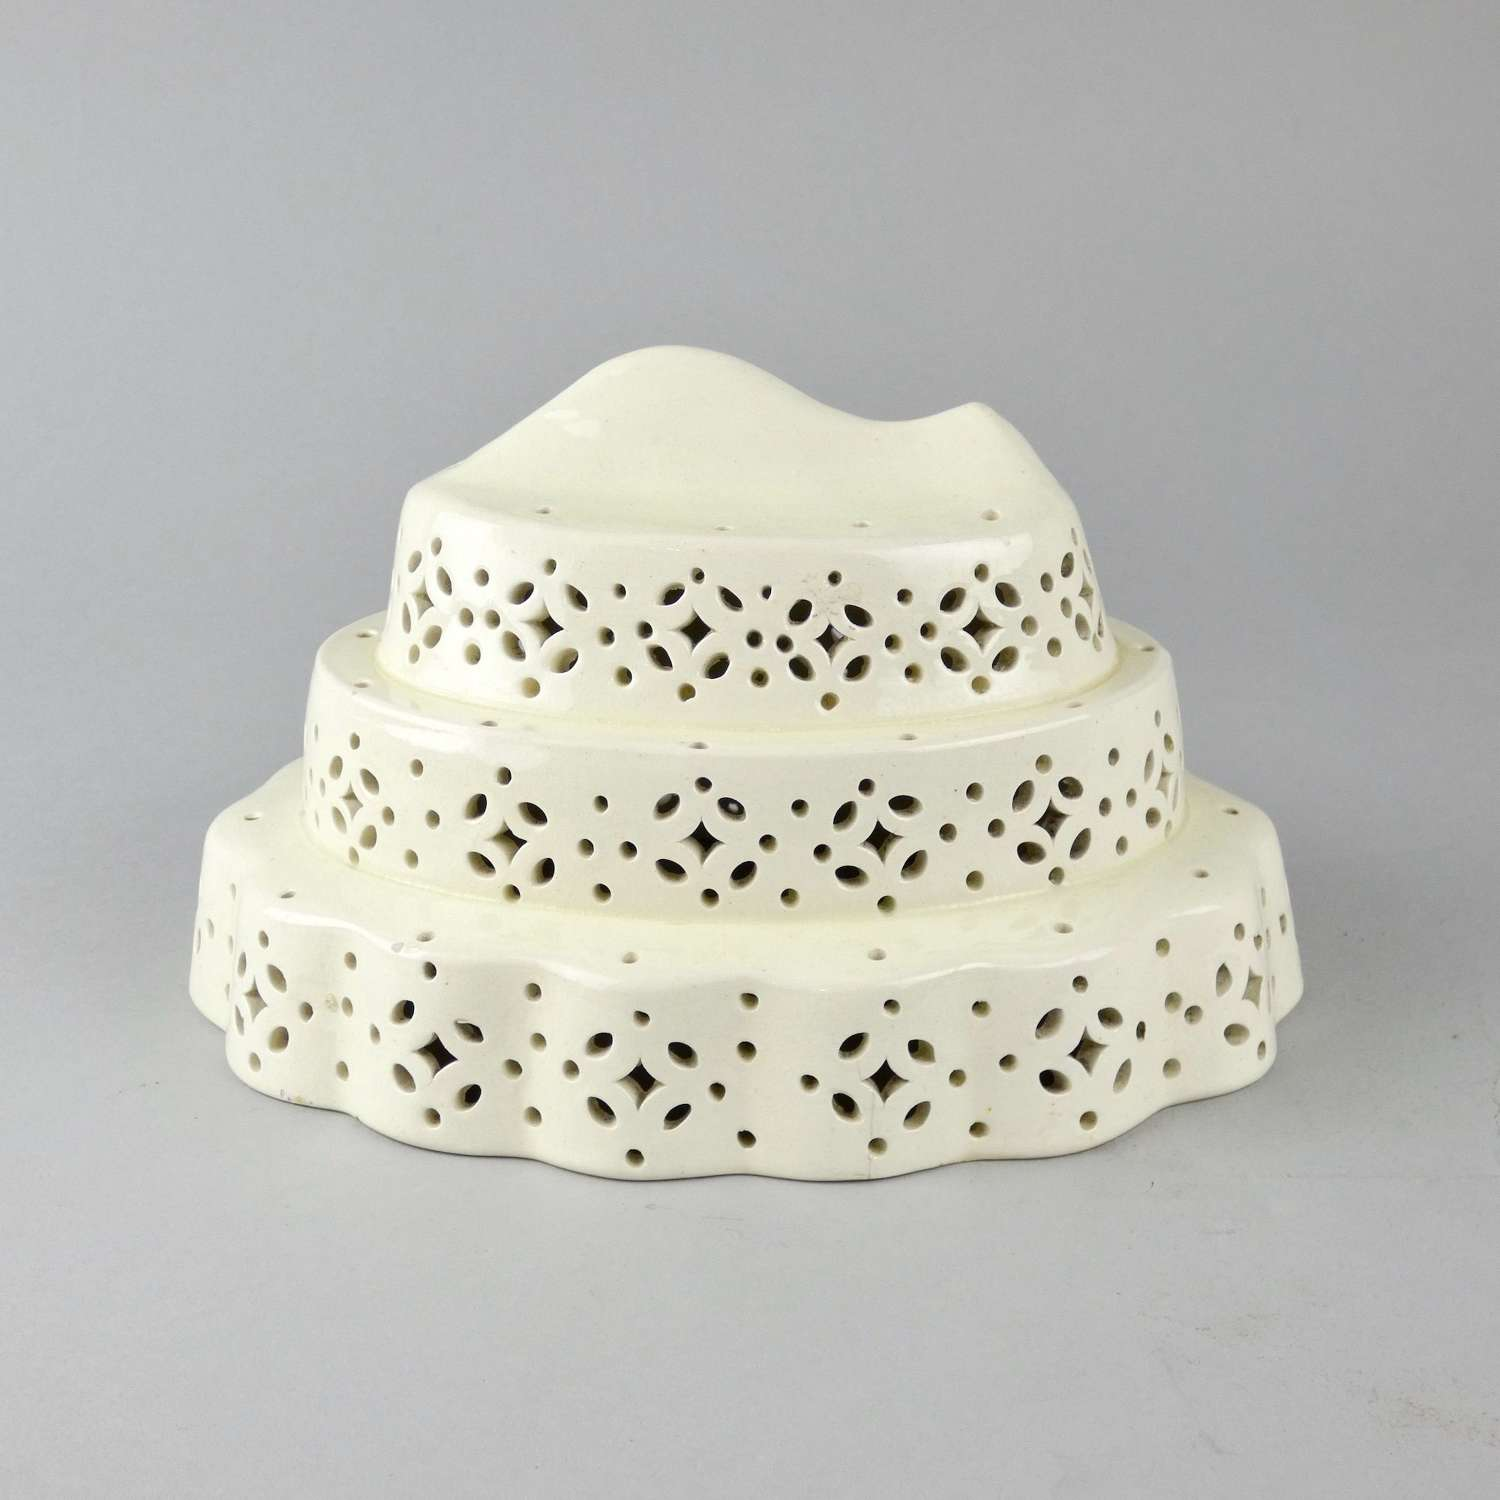 Creamware curd cheese mould